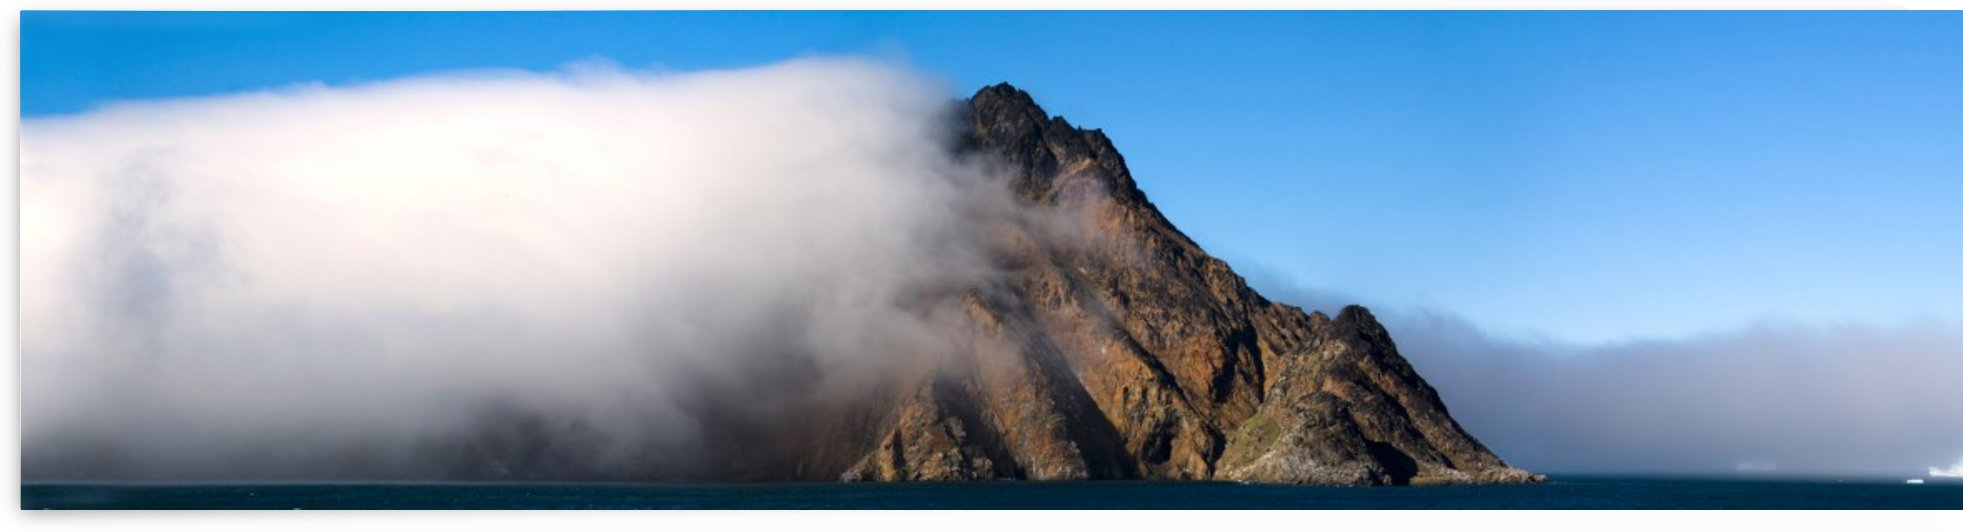 Cloud Covering A Mountain, Greenland by PacificStock